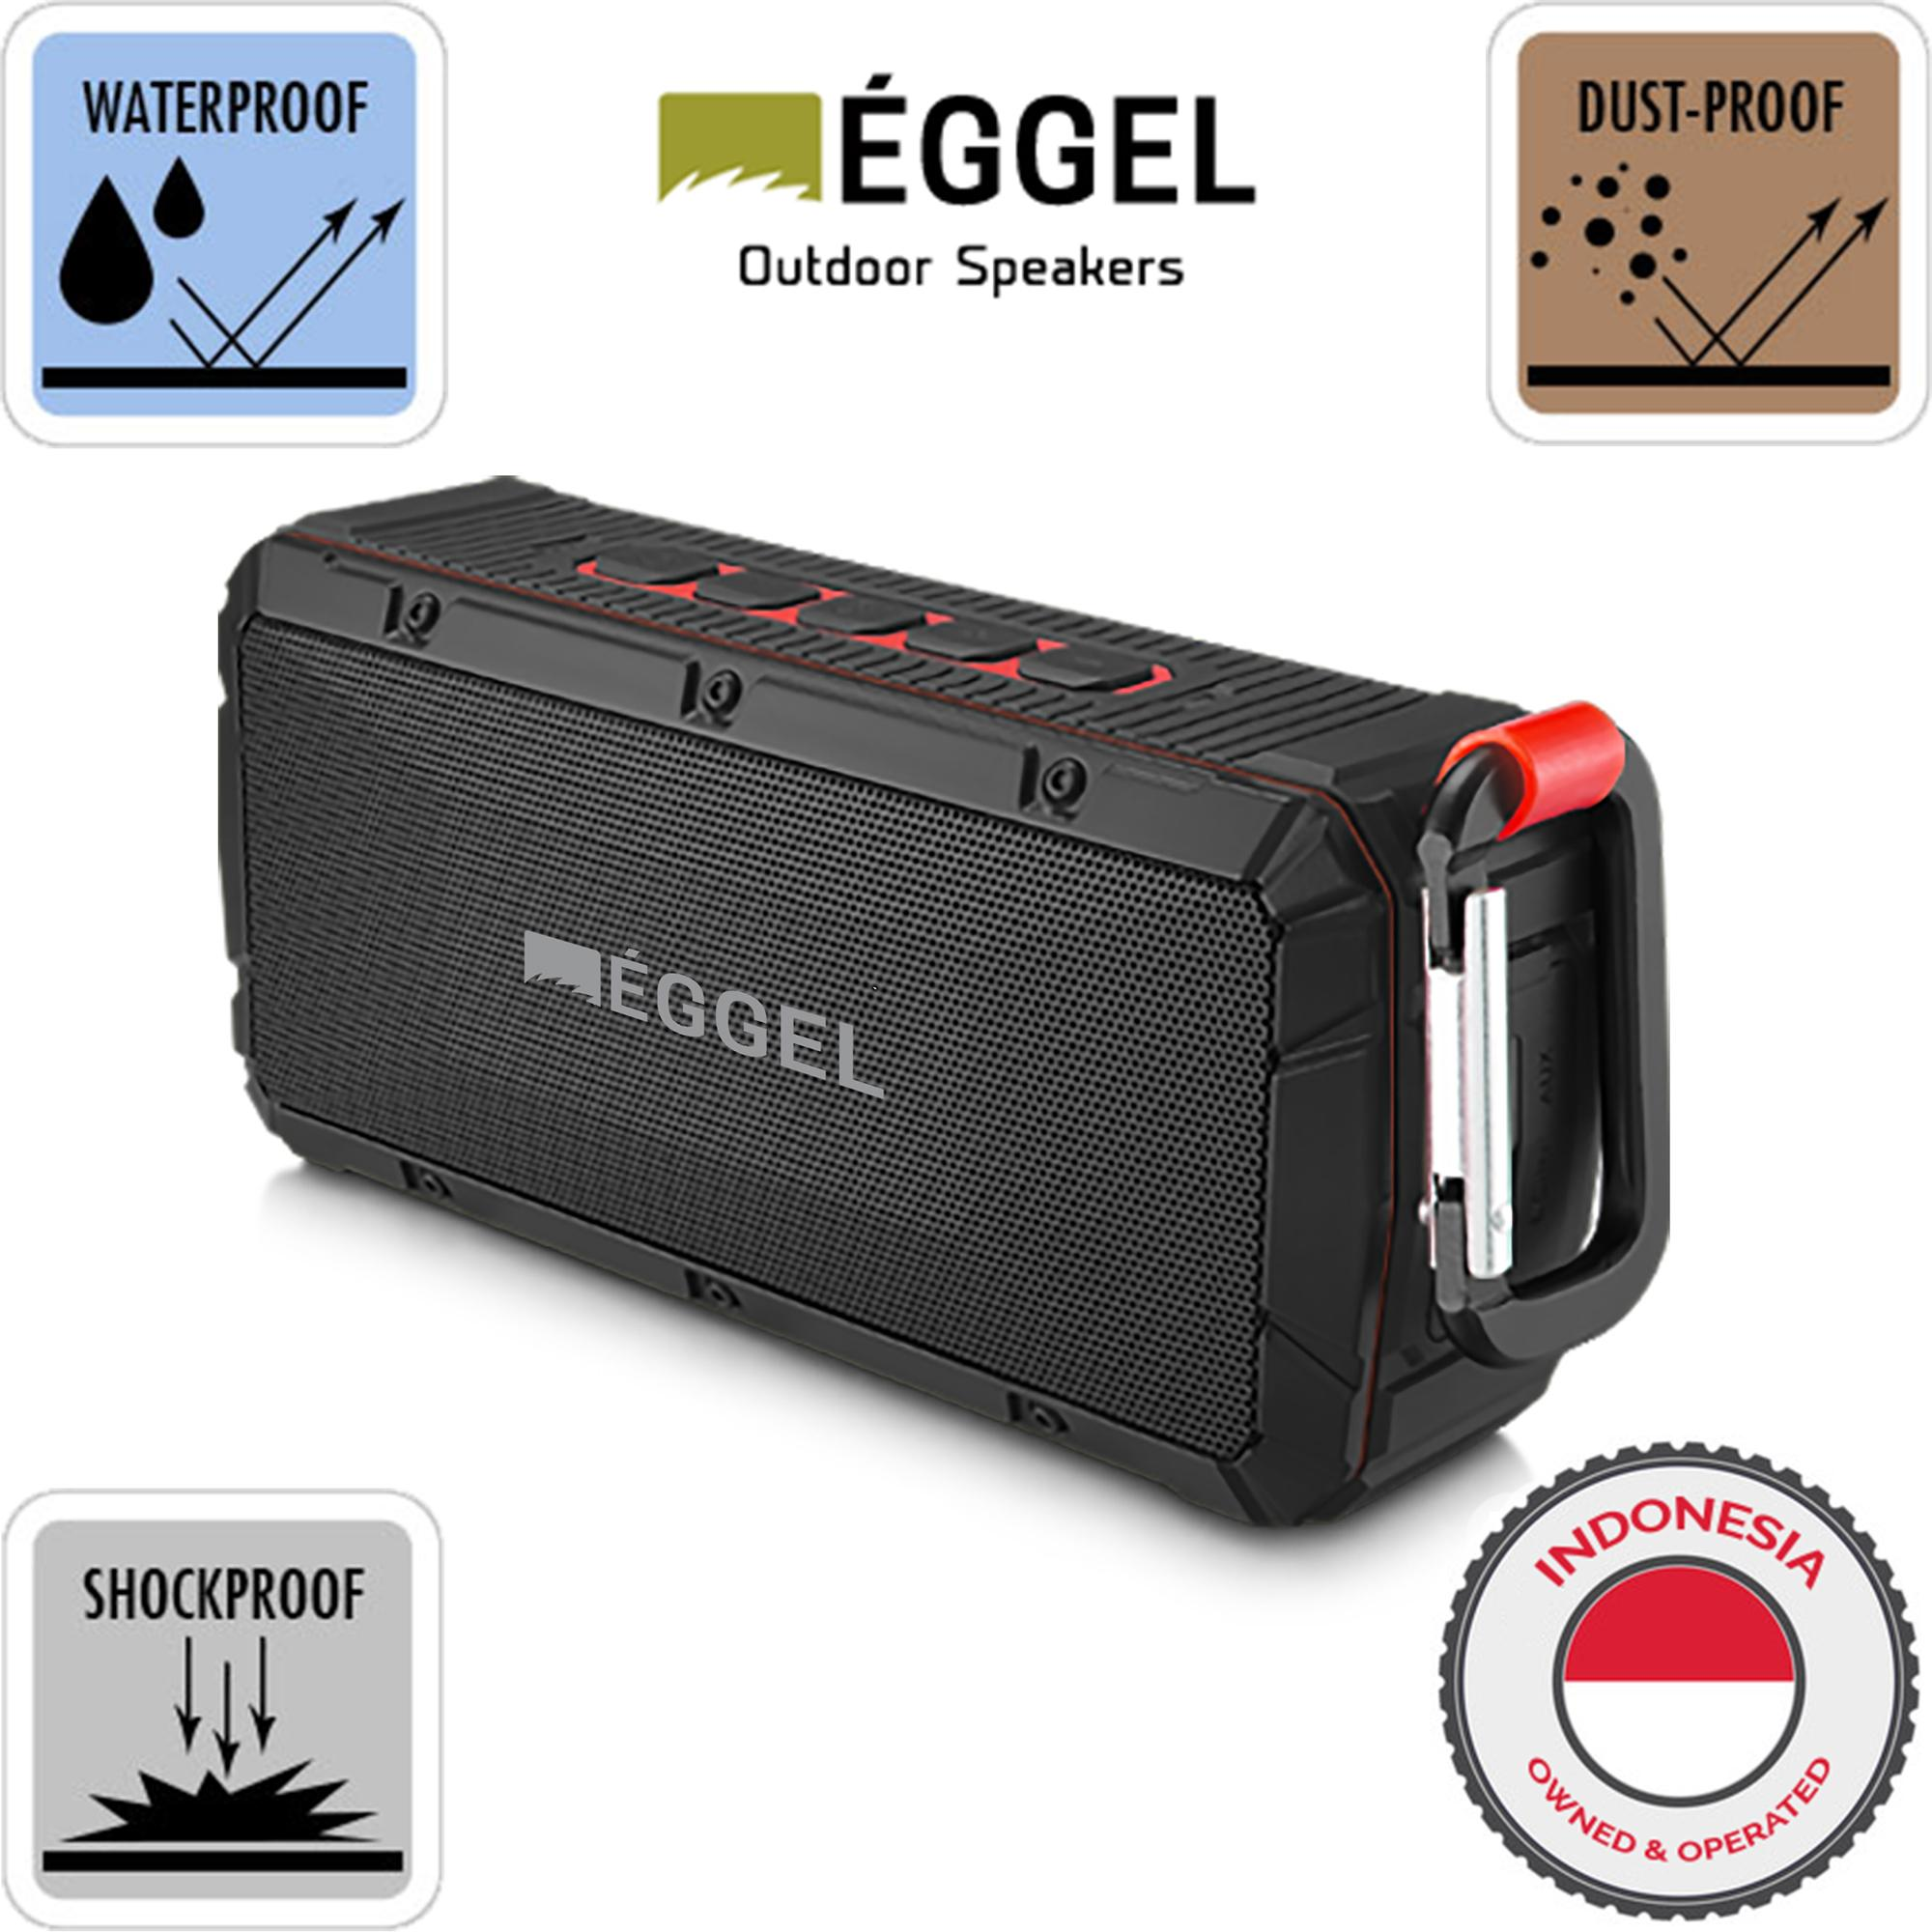 Eggel Terra Waterproof Outdoor Portable Bluetooth Speaker